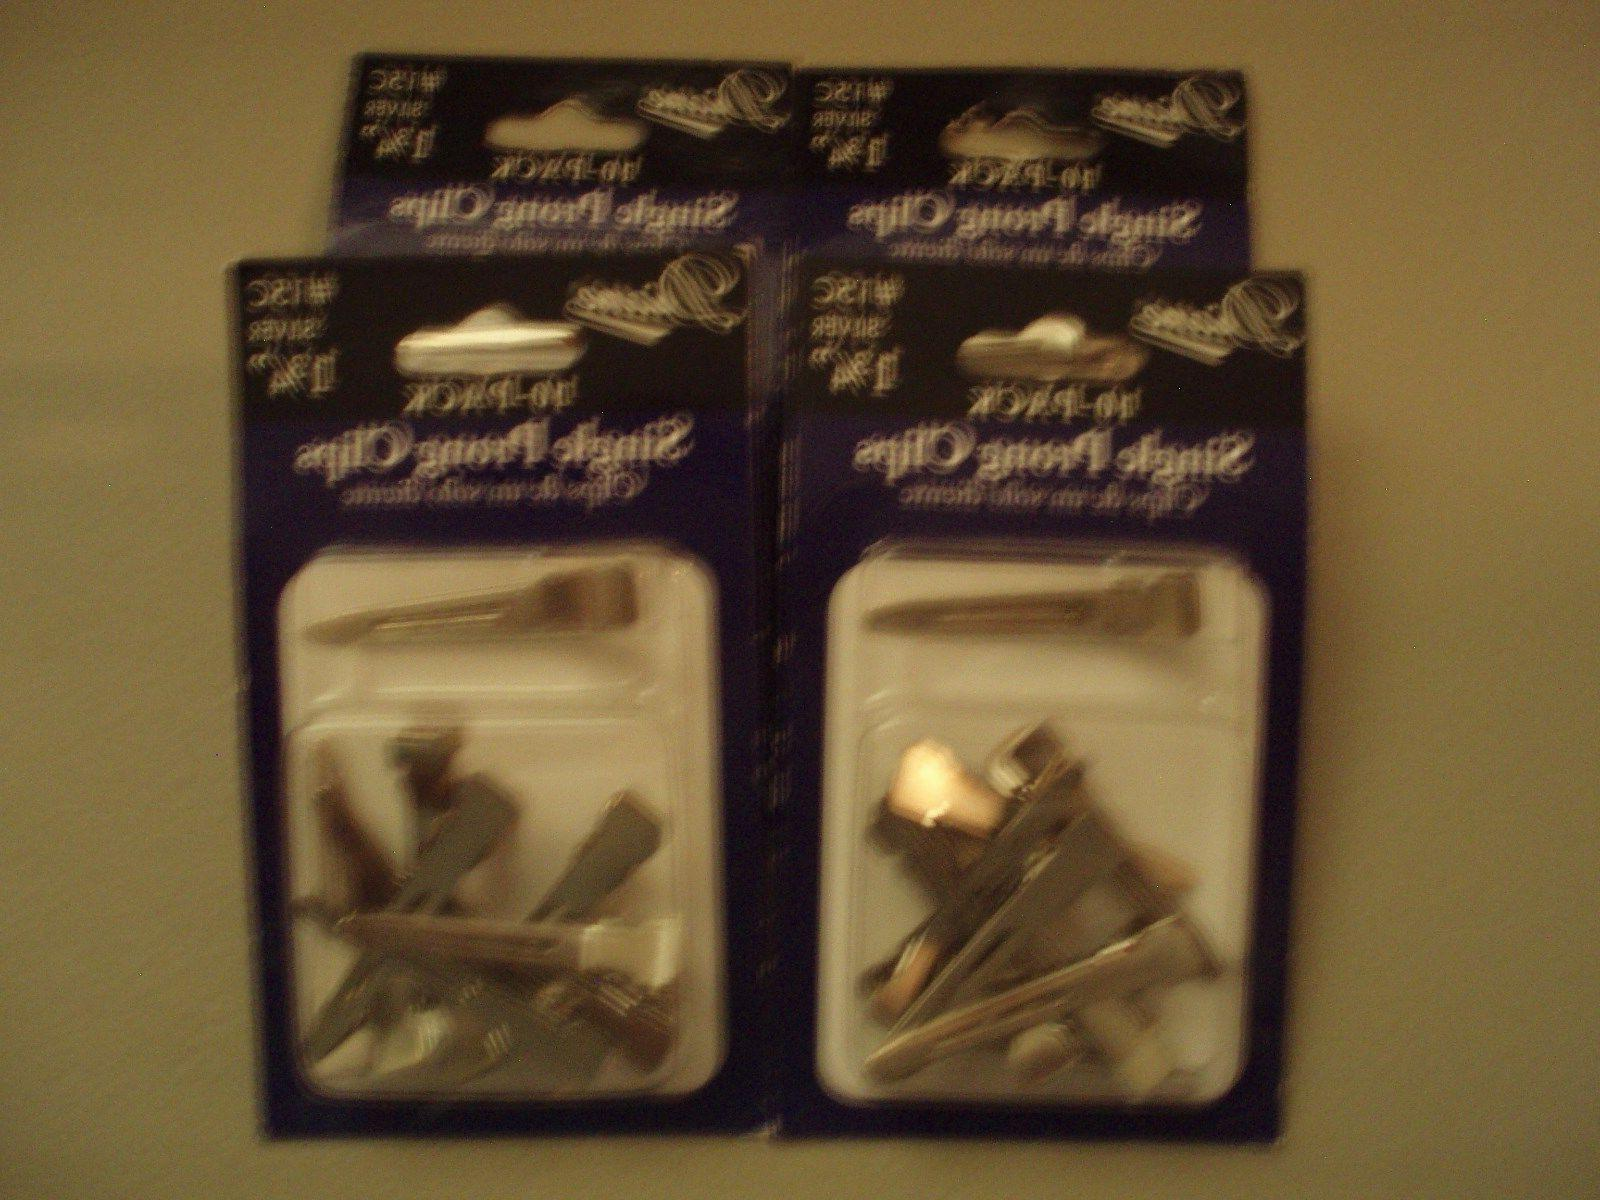 Single Prong Hair Clips Diane Lot of 20 Pks  New in Package